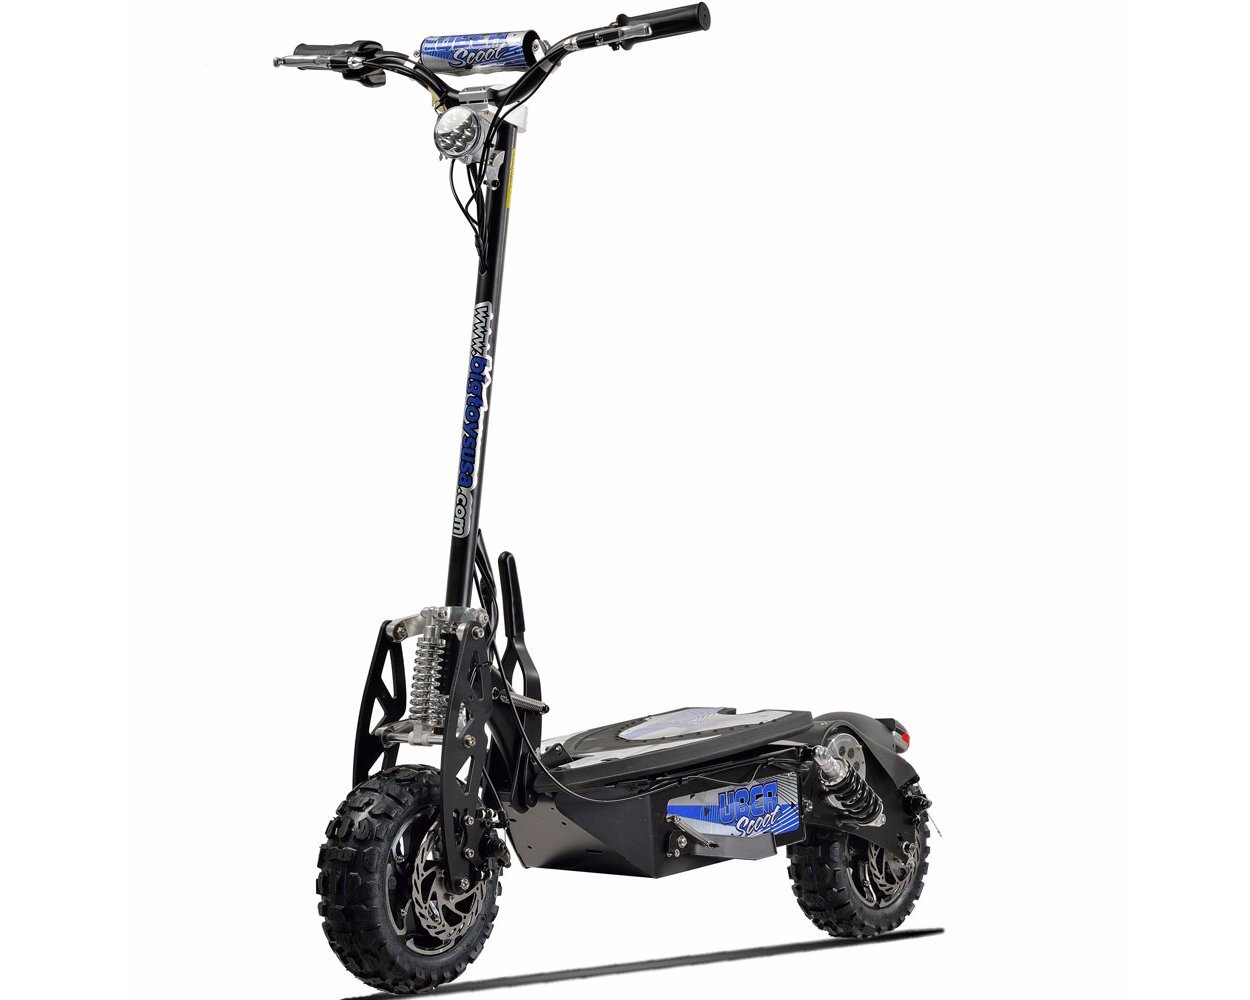 Powerful Electric Scooter for heavy adults above 200 lbs